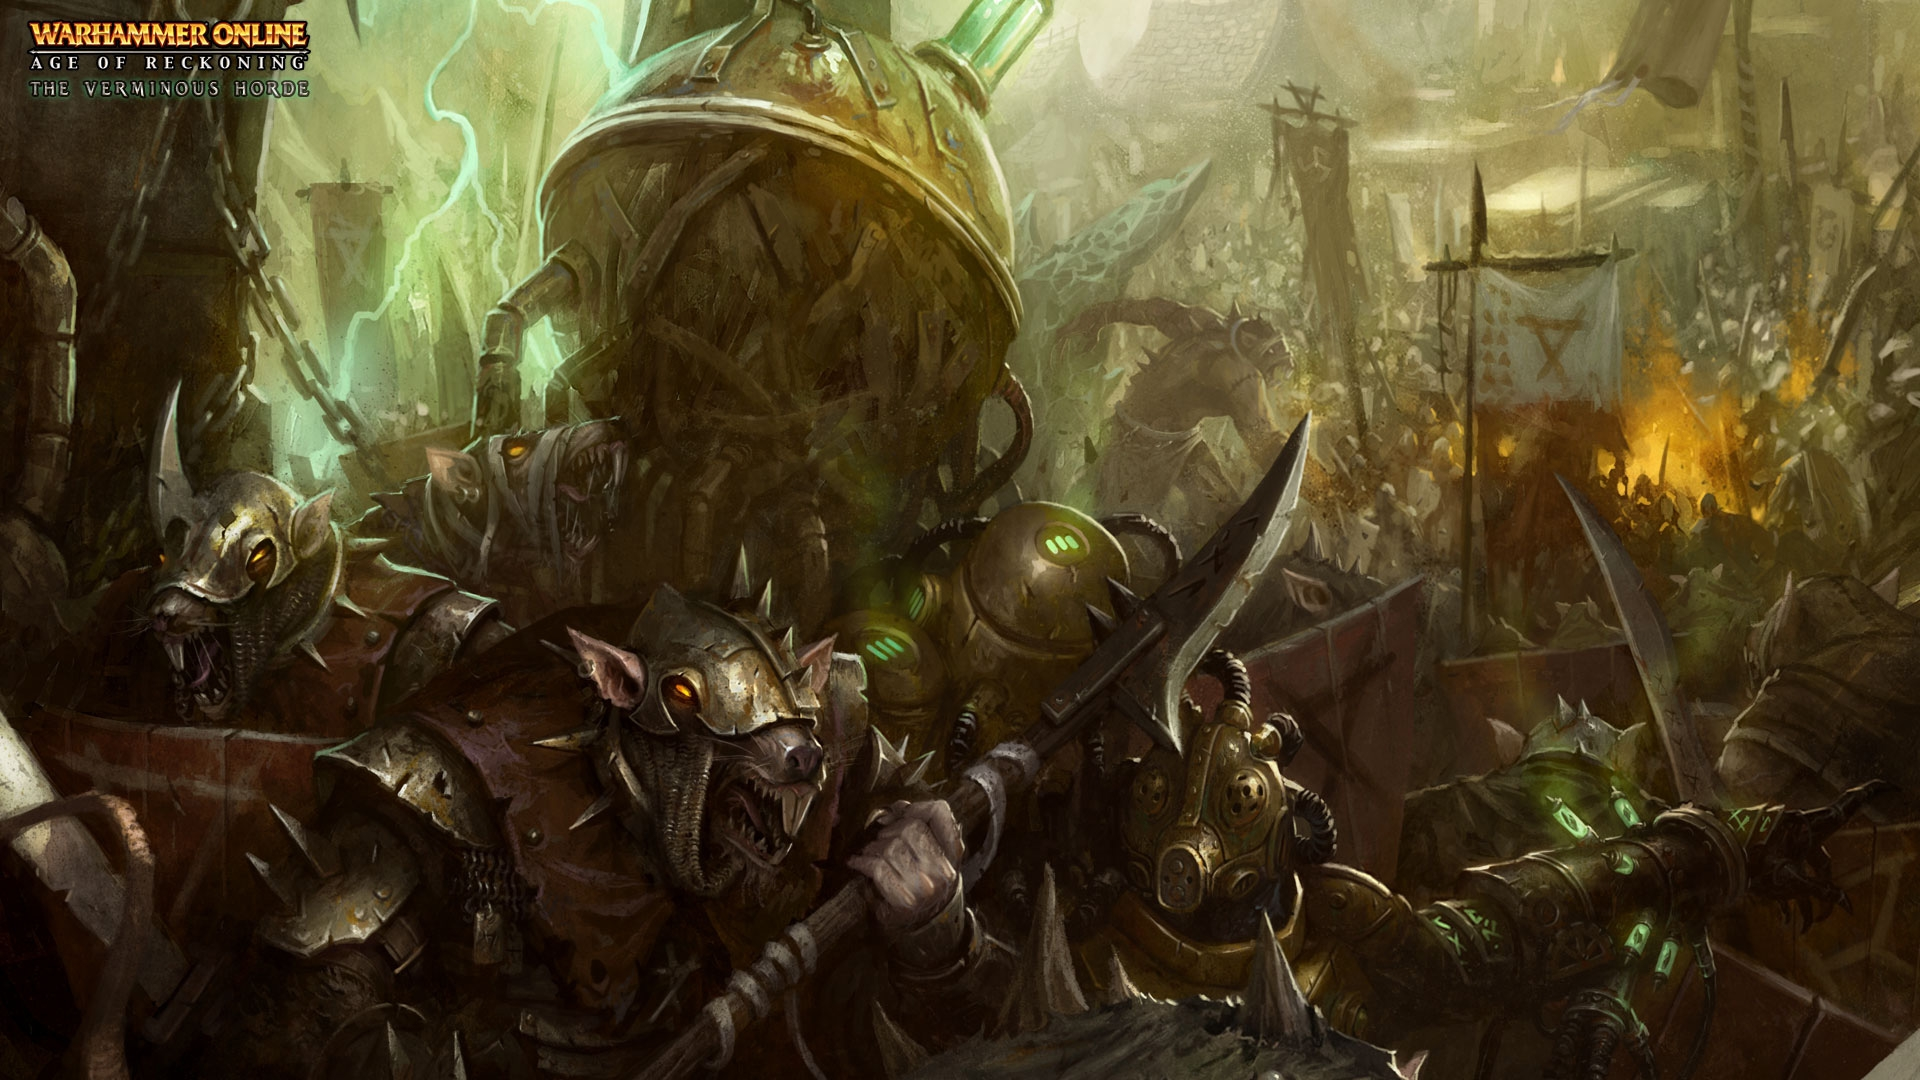 warhammer online age of reckoning computer wallpapers